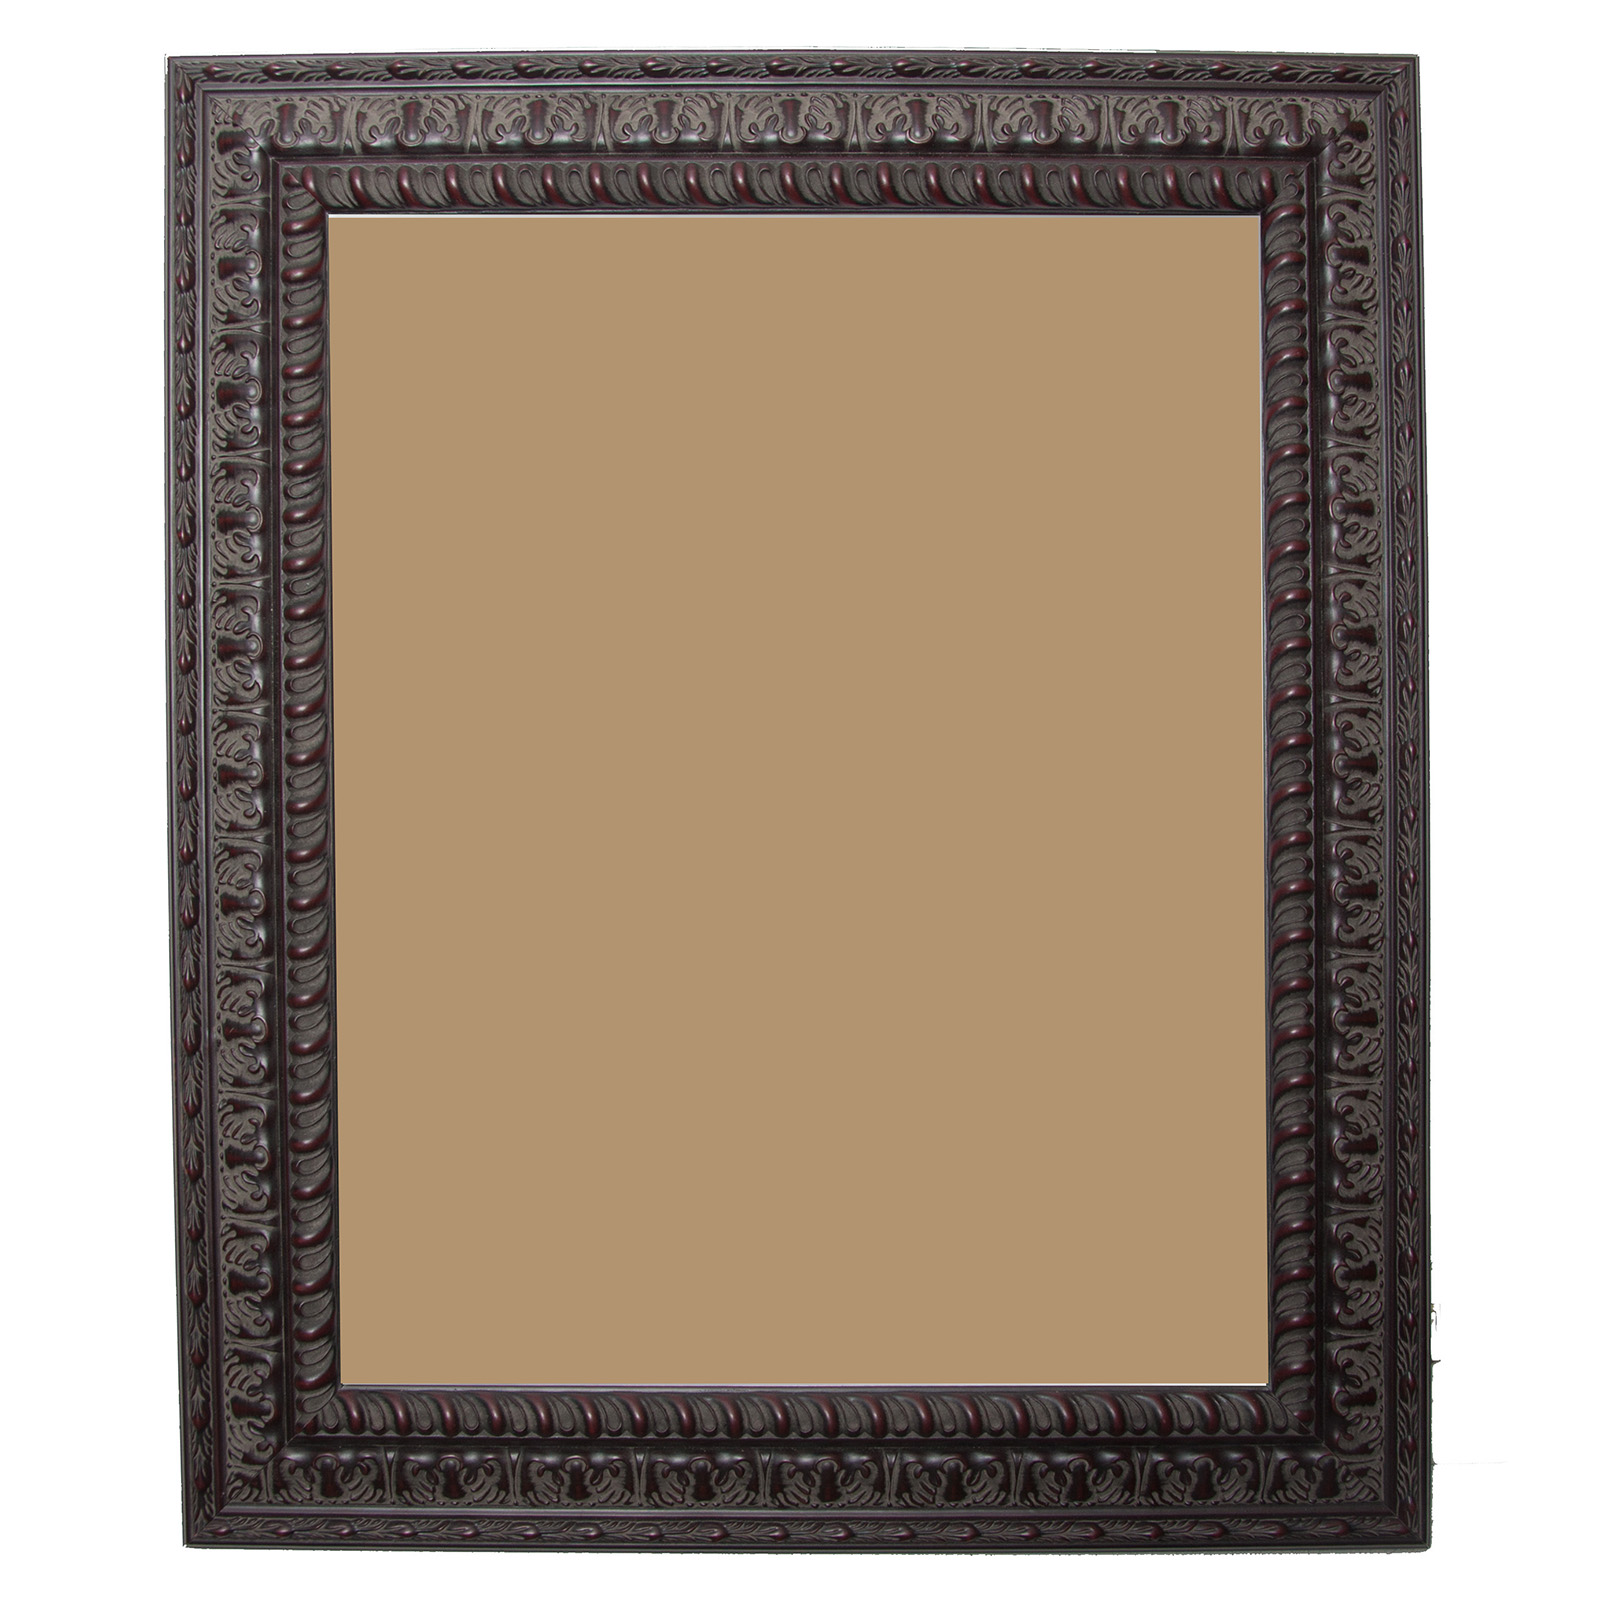 Rayne mirrors dark embellished frame picture frames at for Embellished mirror frame